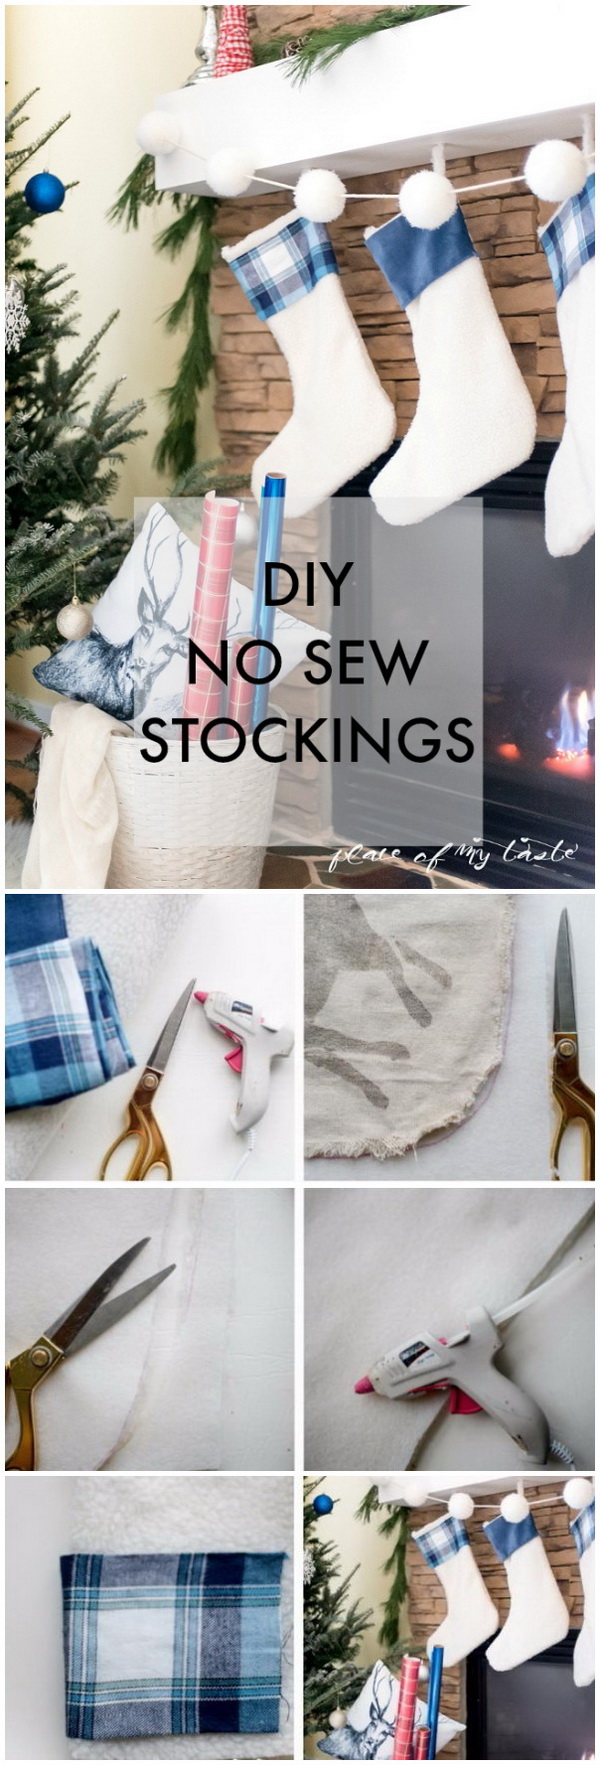 DIY No Sew Stockings.